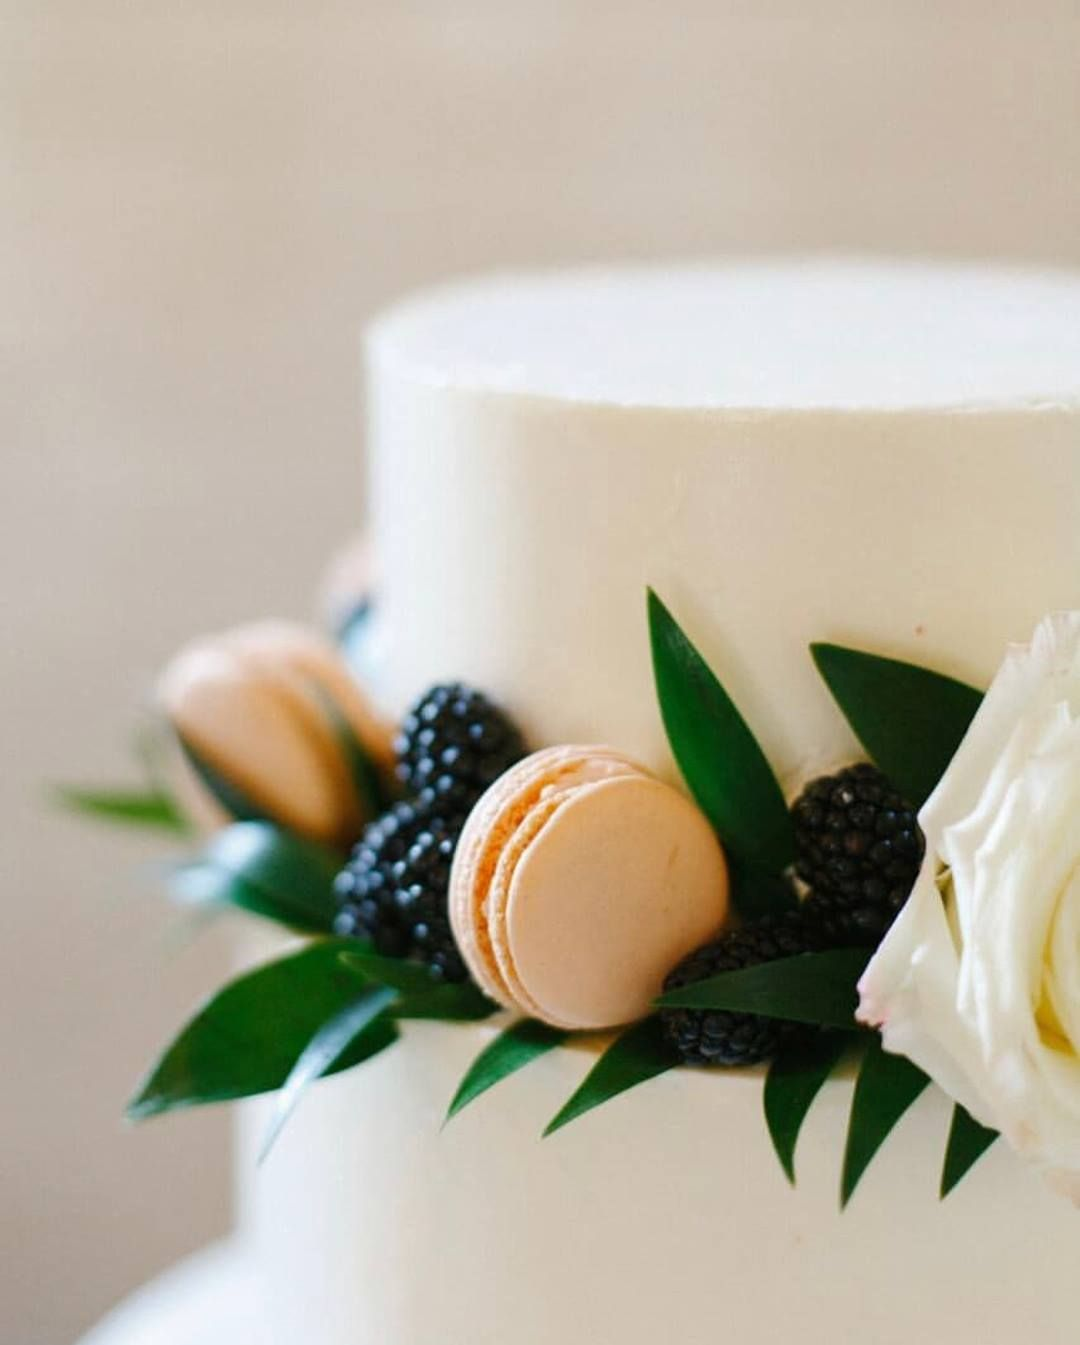 Blackberries Roses Greenery And Sherbert Colored Macaroons These Dainty Details Are Making Us Swoon P Wedding Cakes With Flowers How To Make Cake Dainty